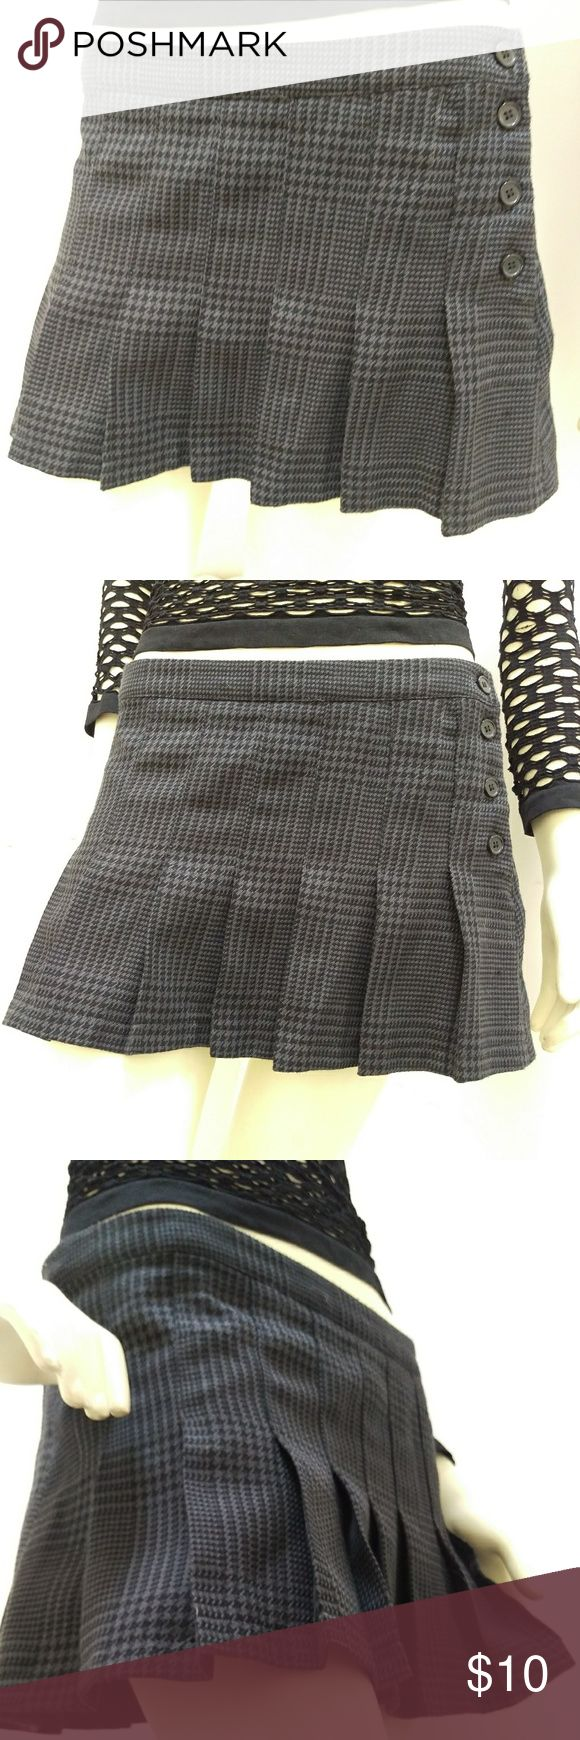 🆕✴Pleated Schoolgirl Style Mini - Miley Cyrus✴ .Super cute grey and black pleated schoolgirl style miniskirt  by Miley Cyrus and Max Azria (Bcbg) for Walmart.  Size Juniors 9 Shell 86% Polyester 14% Viscose Lining 100% Polyester Wash w/ like colors and line dry.  In excellent used condition. Only wore it a few times. Miley Cyrus & Max Azria Skirts